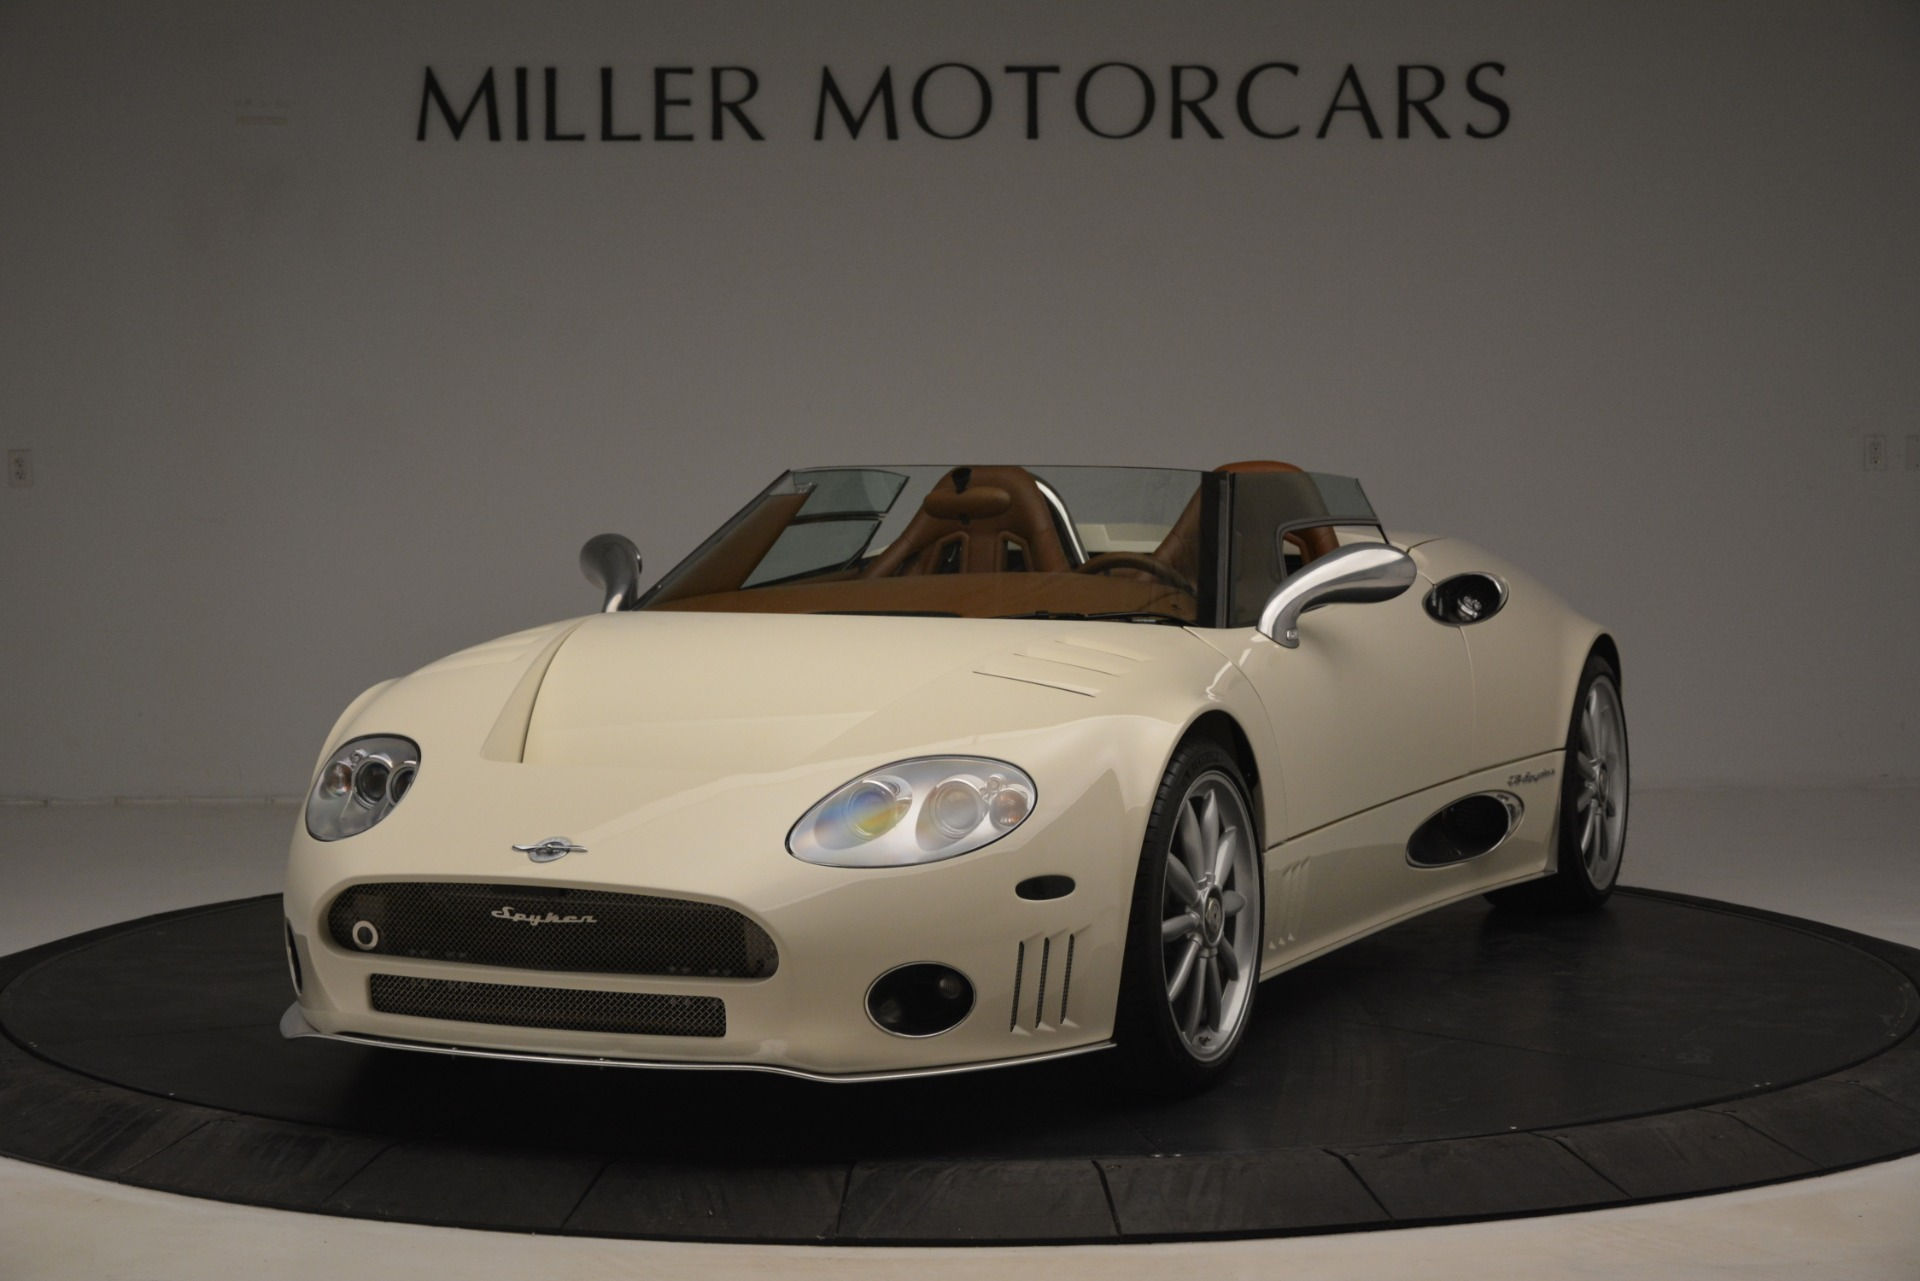 Used 2006 Spyker C8 Spyder for sale Sold at Bentley Greenwich in Greenwich CT 06830 1